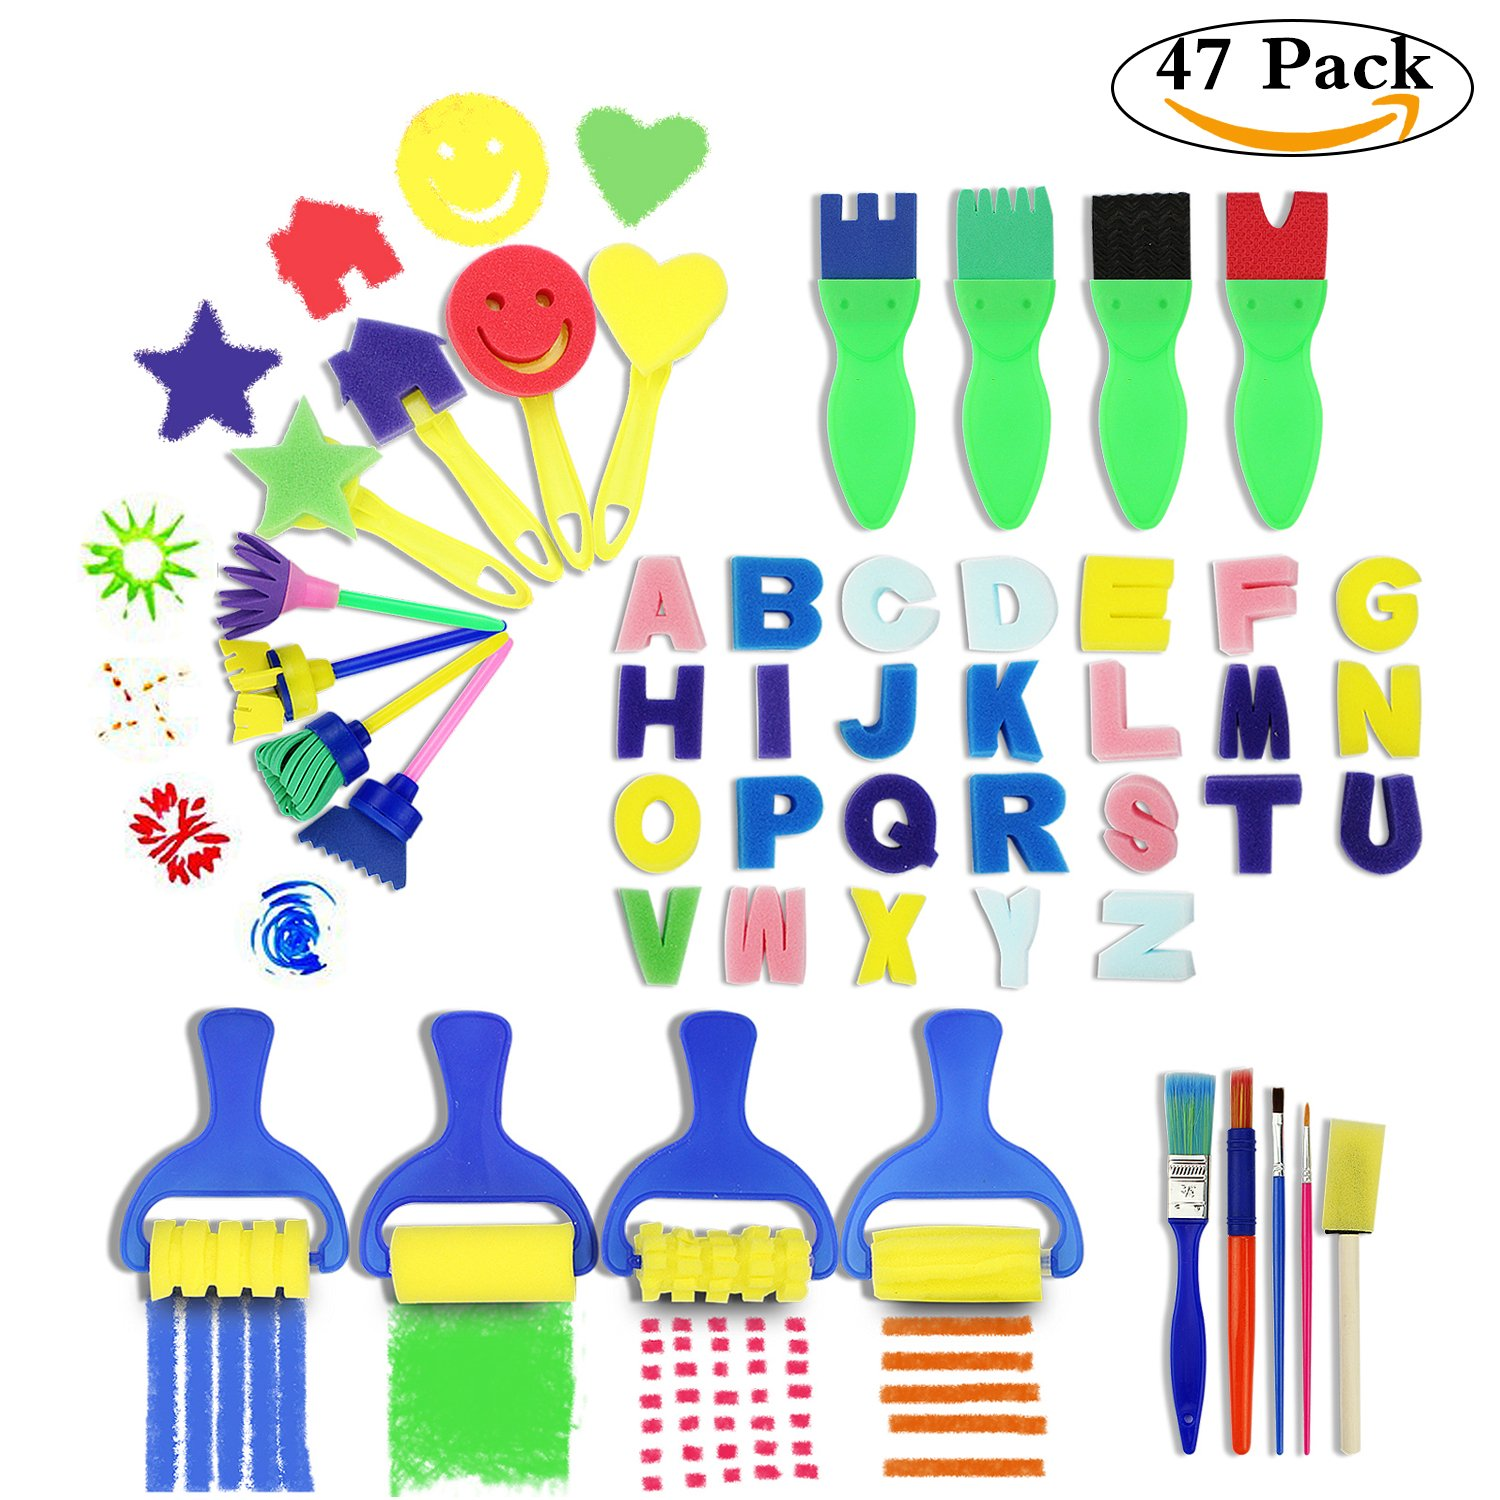 Kids Art & Craft 47 Pieces Sponge Painting Brushes Kids Painting Kits Early DIY Learning include Foam Brushes,Art Craftssponge brush, flower pattern brush, Brush set and 26 English letters